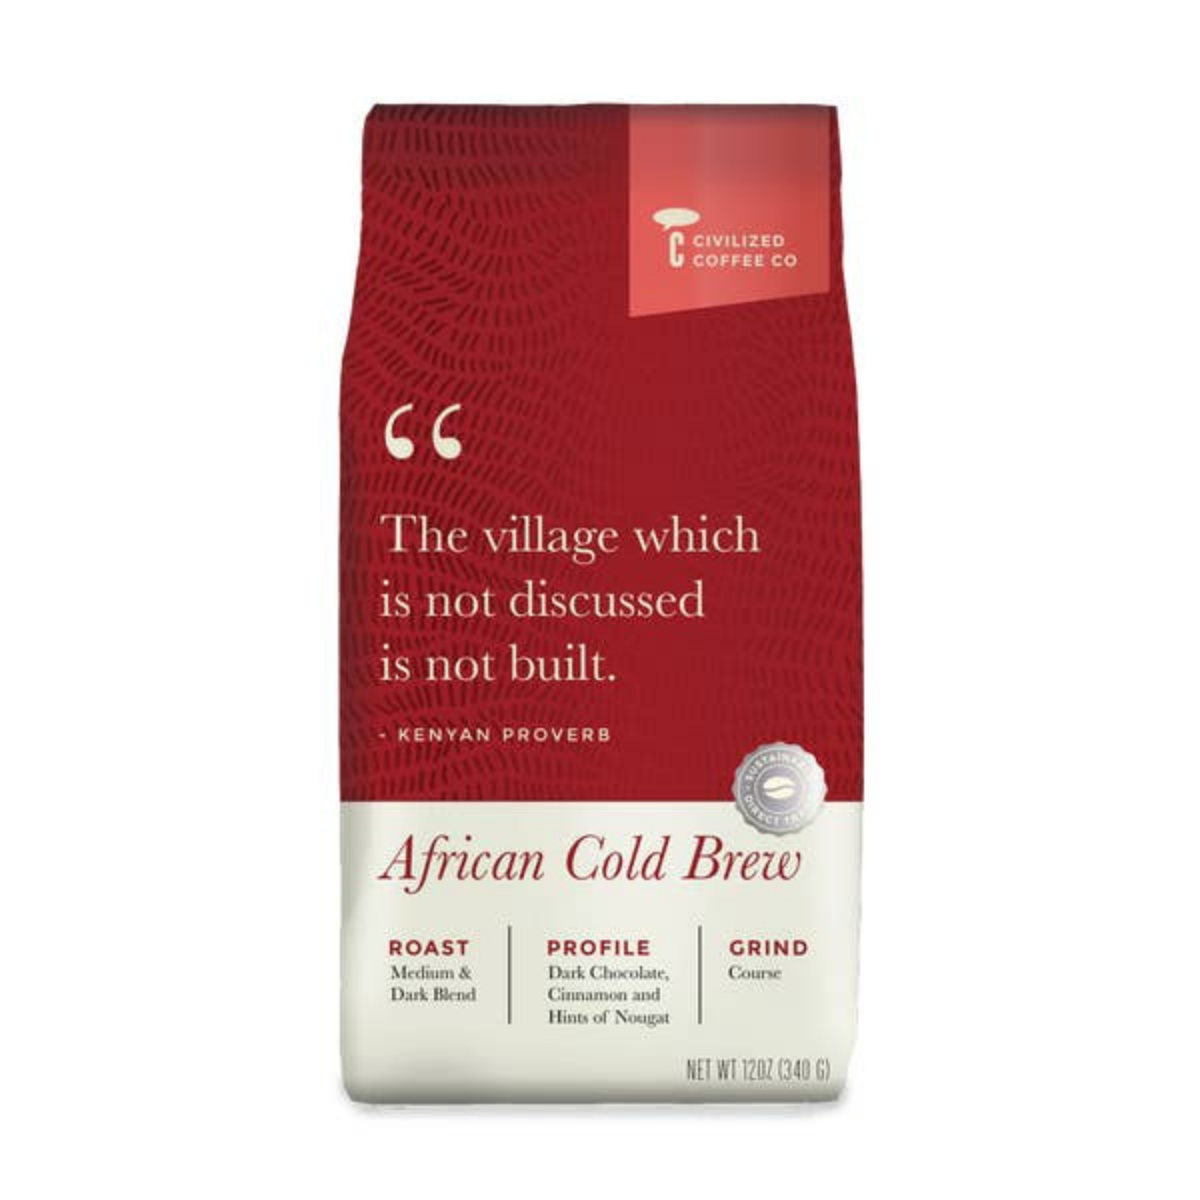 African Cold Brew (Coarse Ground Coffee) - Offensive Mug